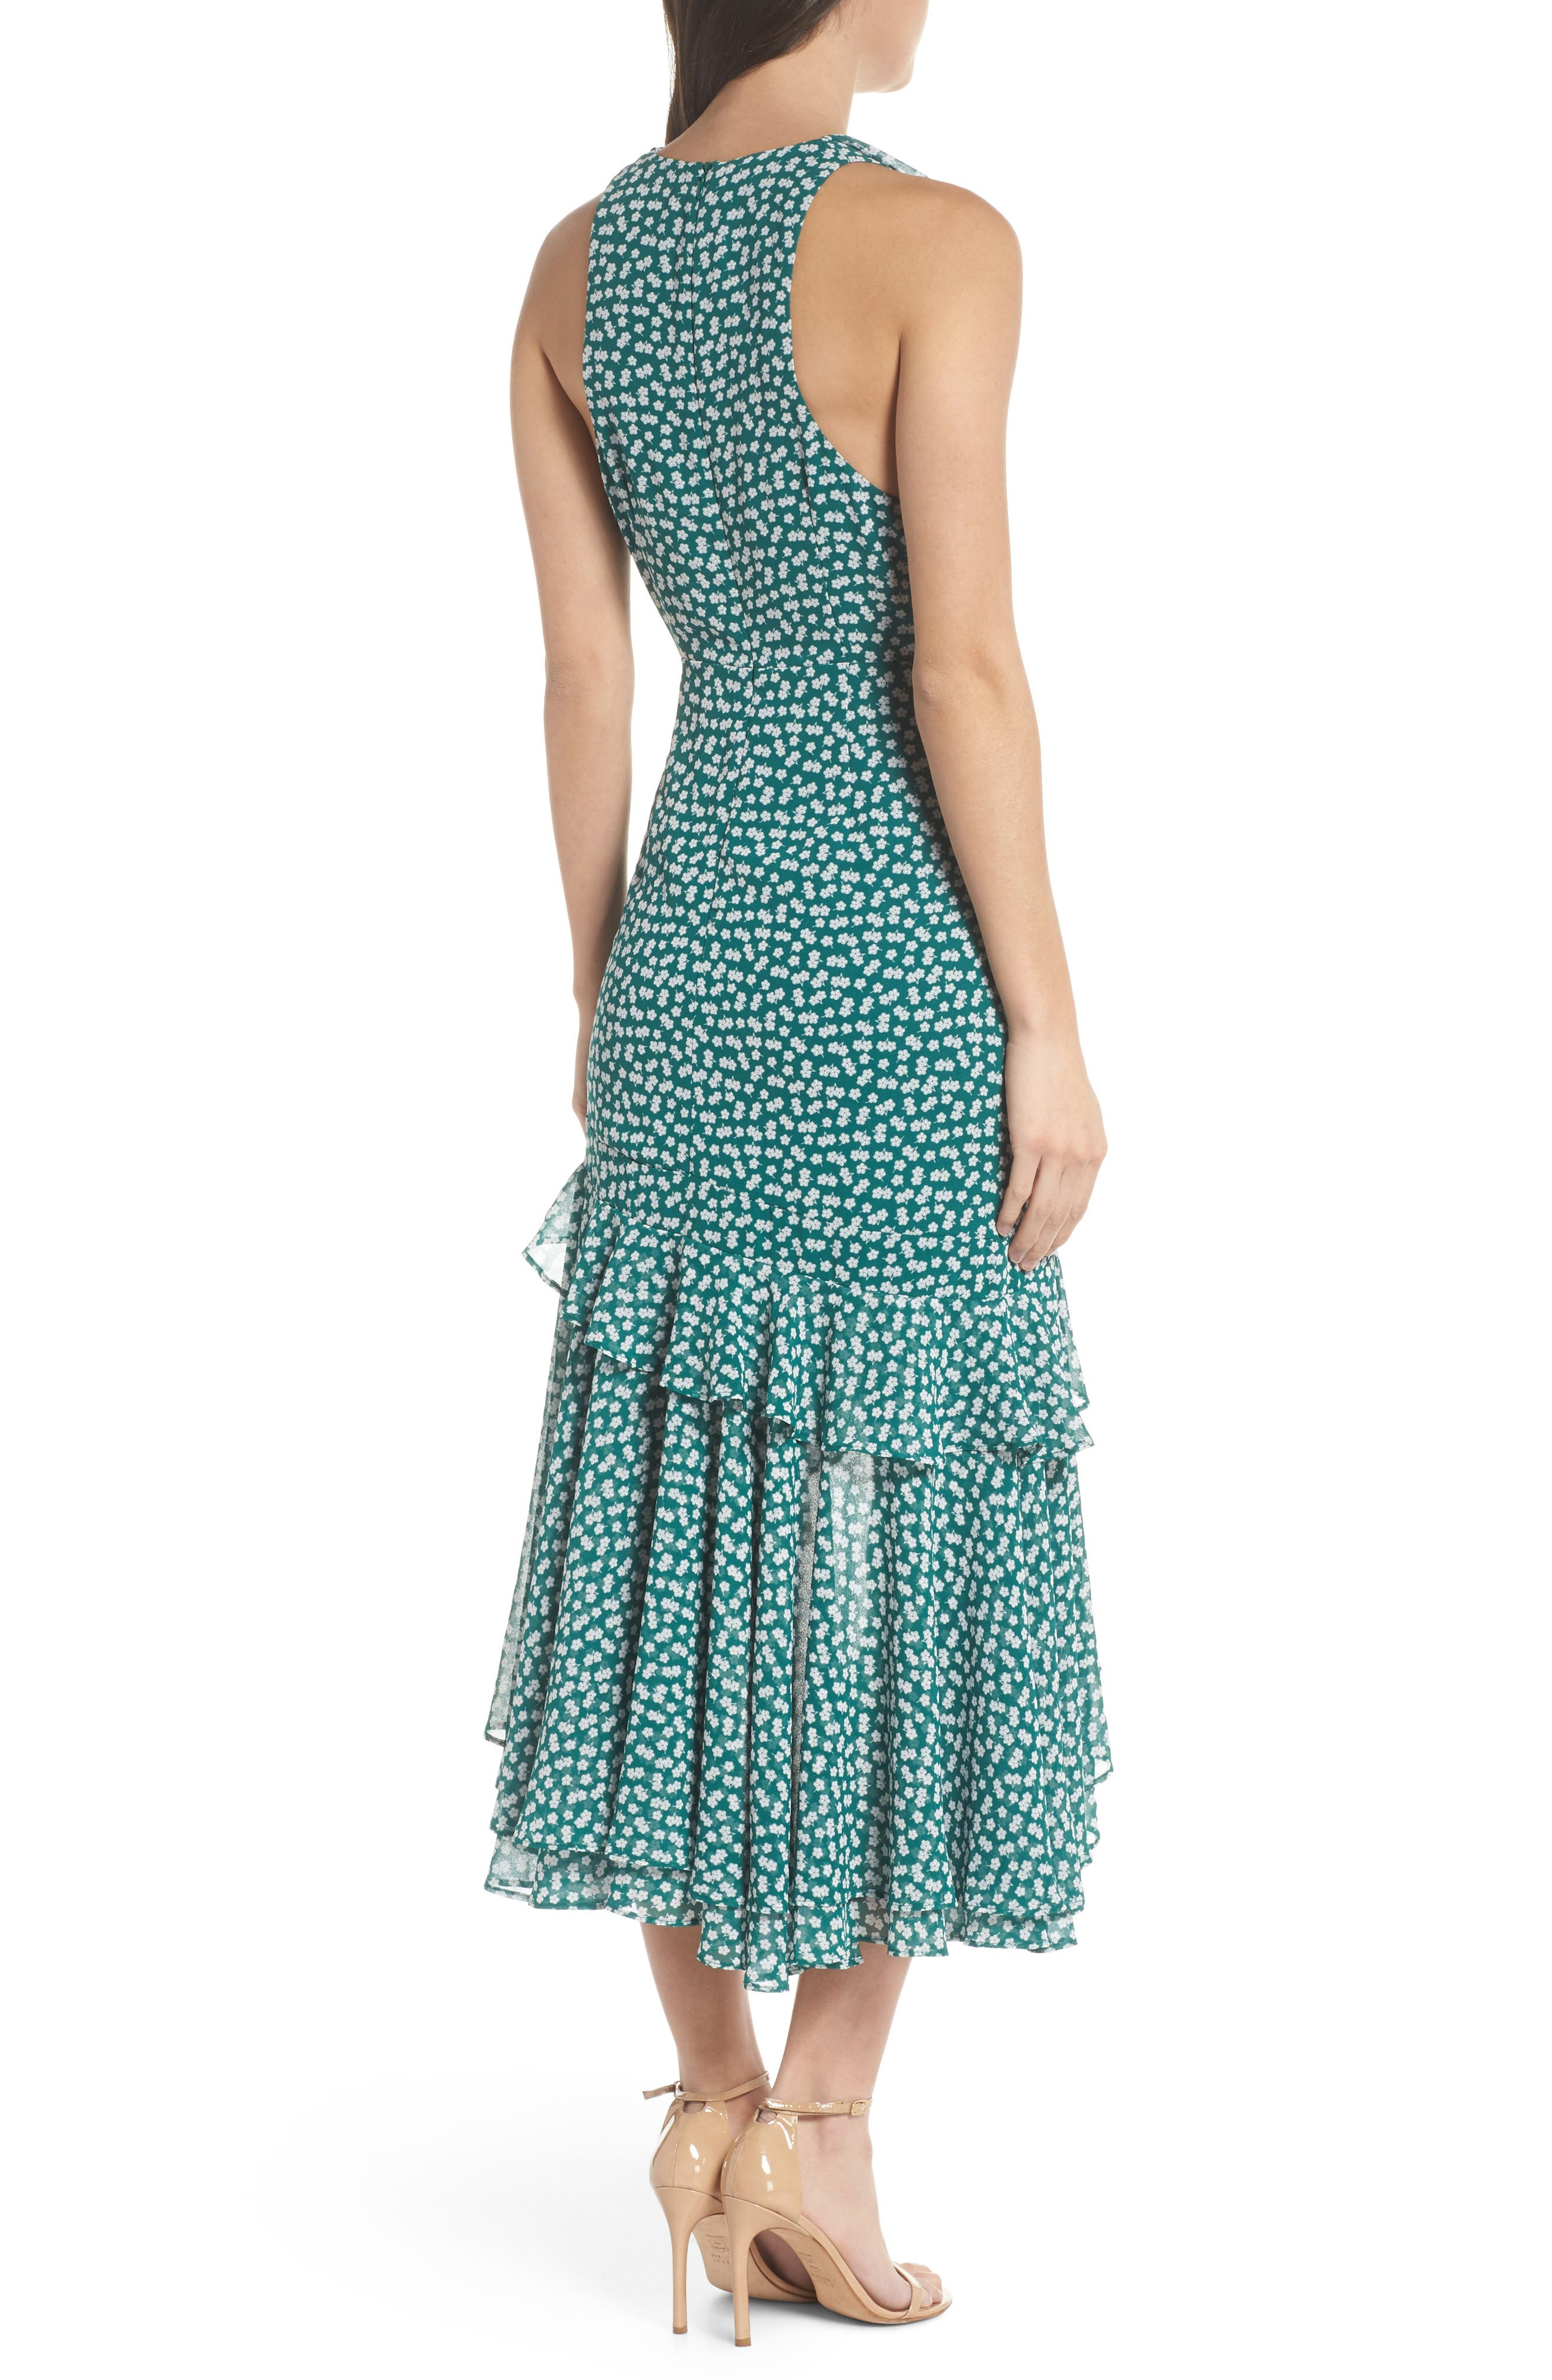 Be About You Ruffle Midi Dress,                             Alternate thumbnail 2, color,                             303